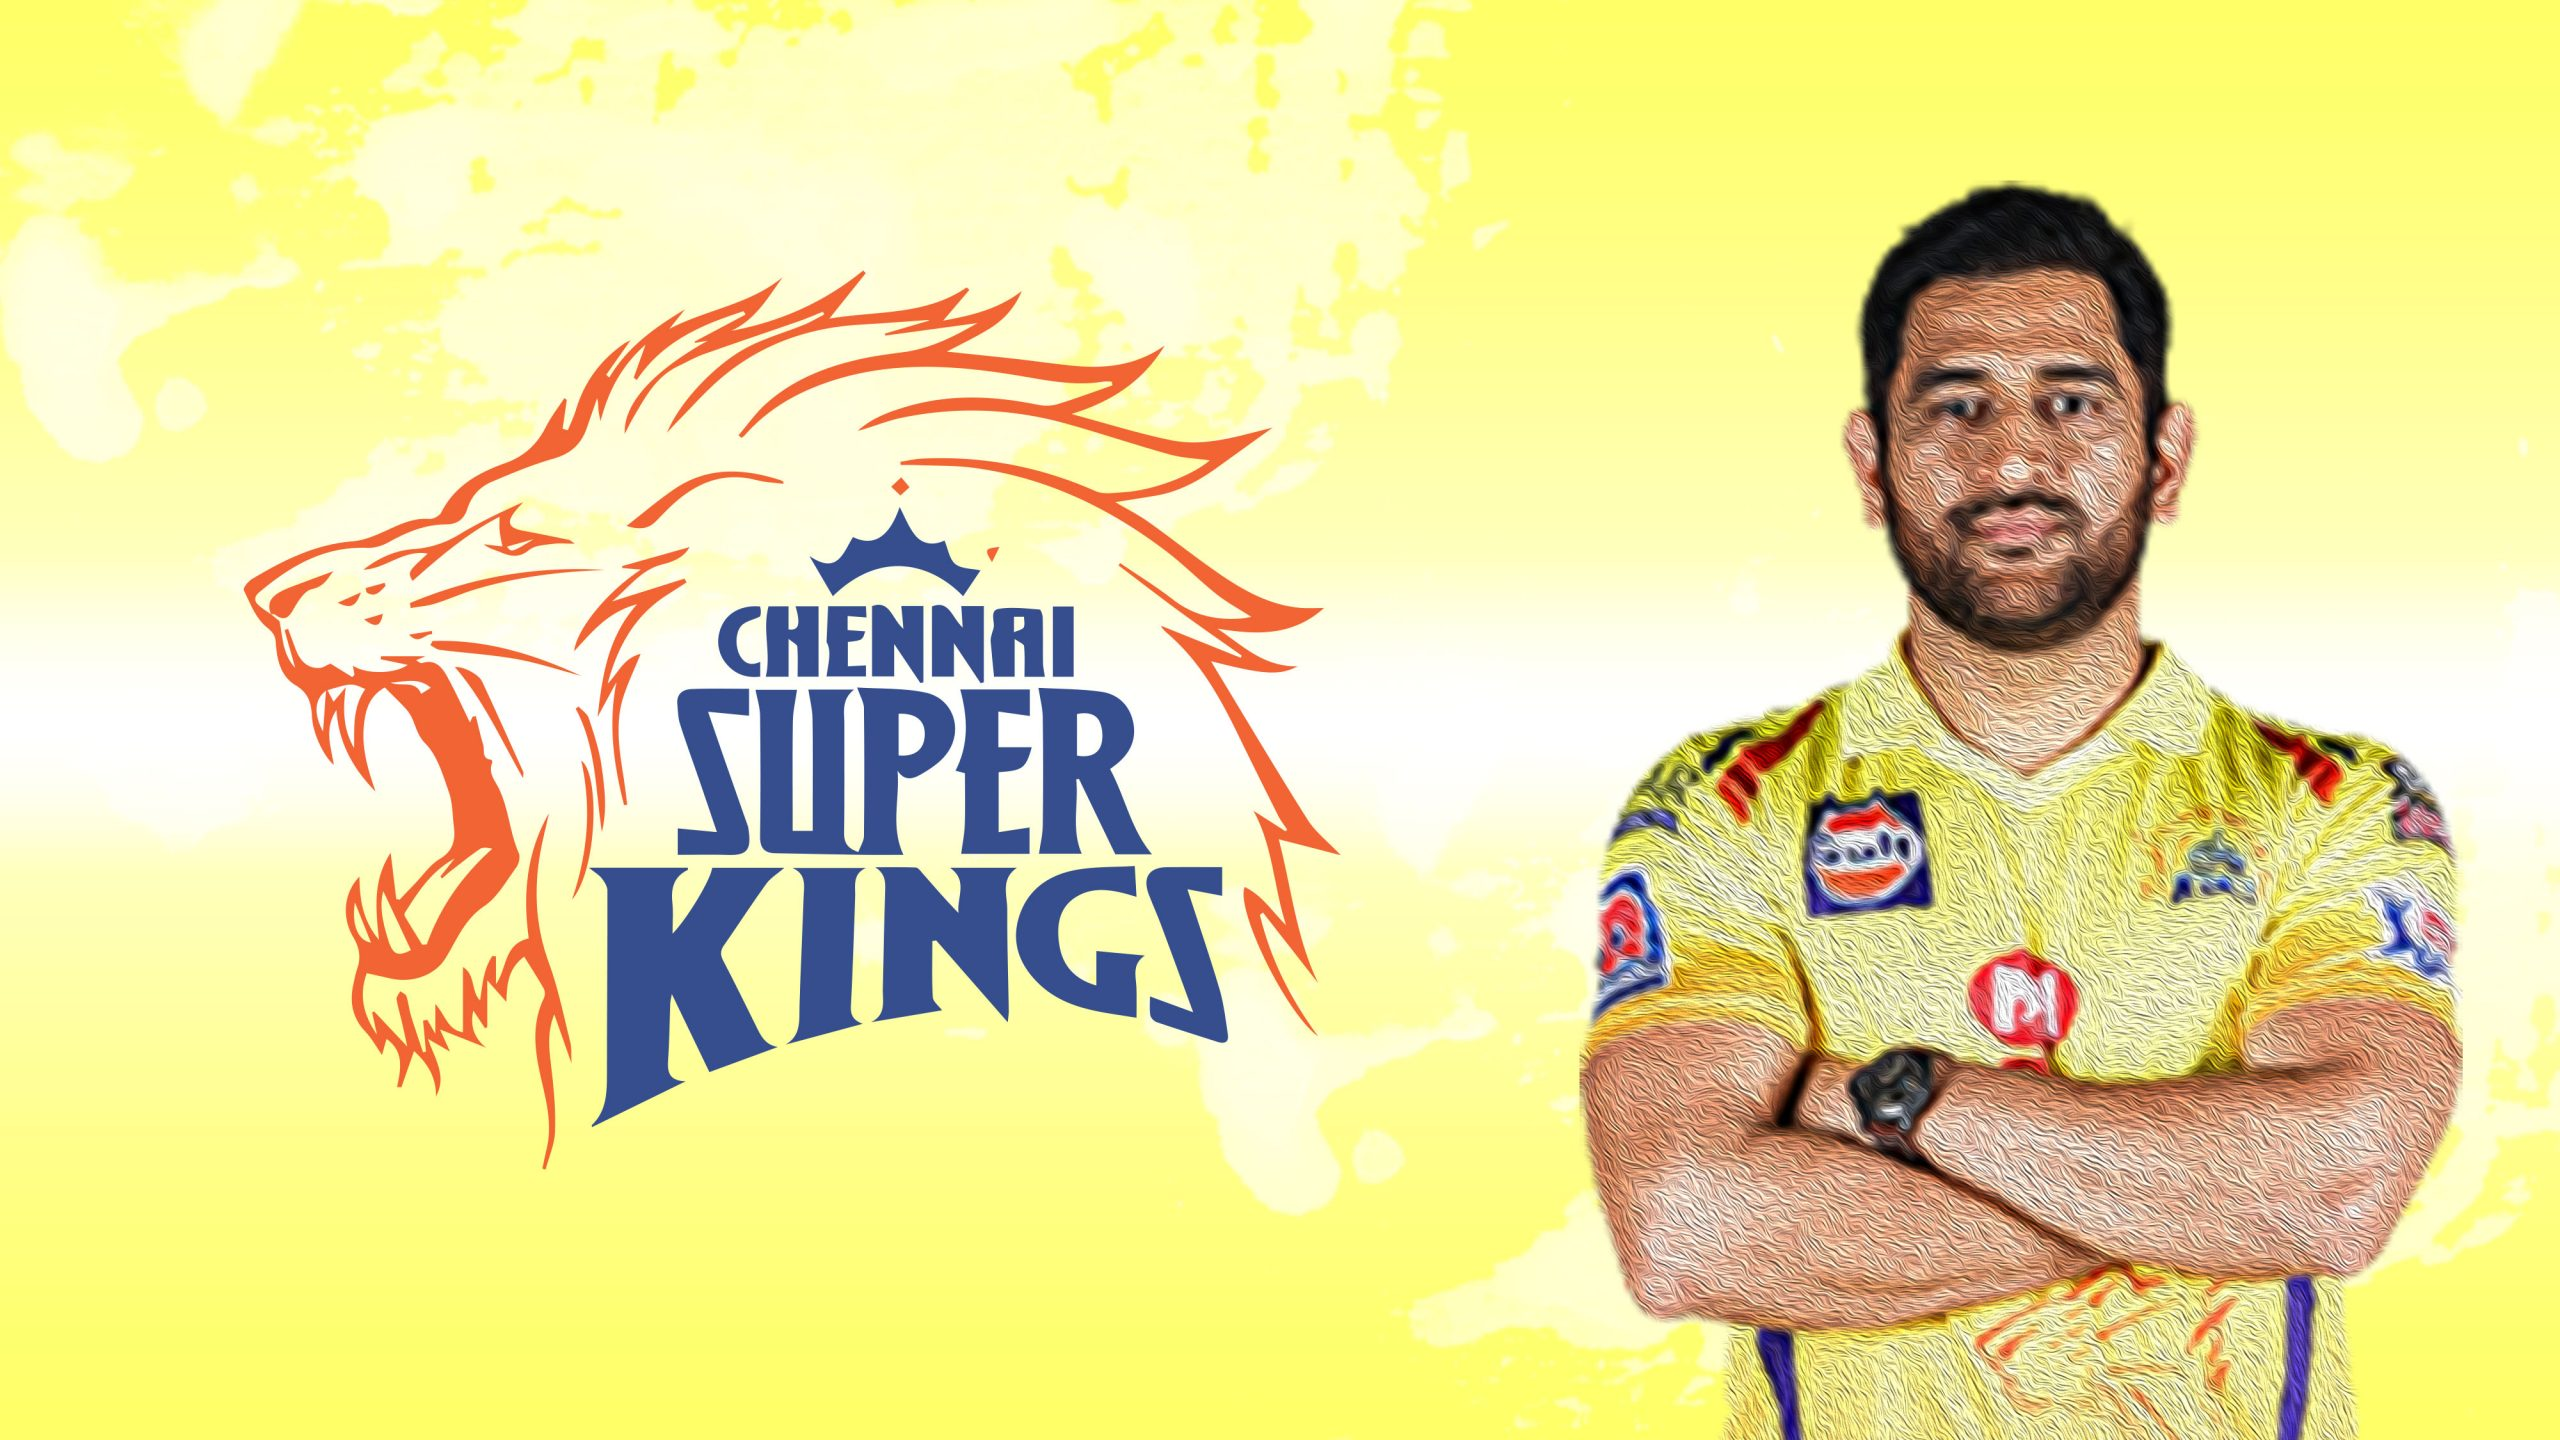 IPL team Chennai super kings